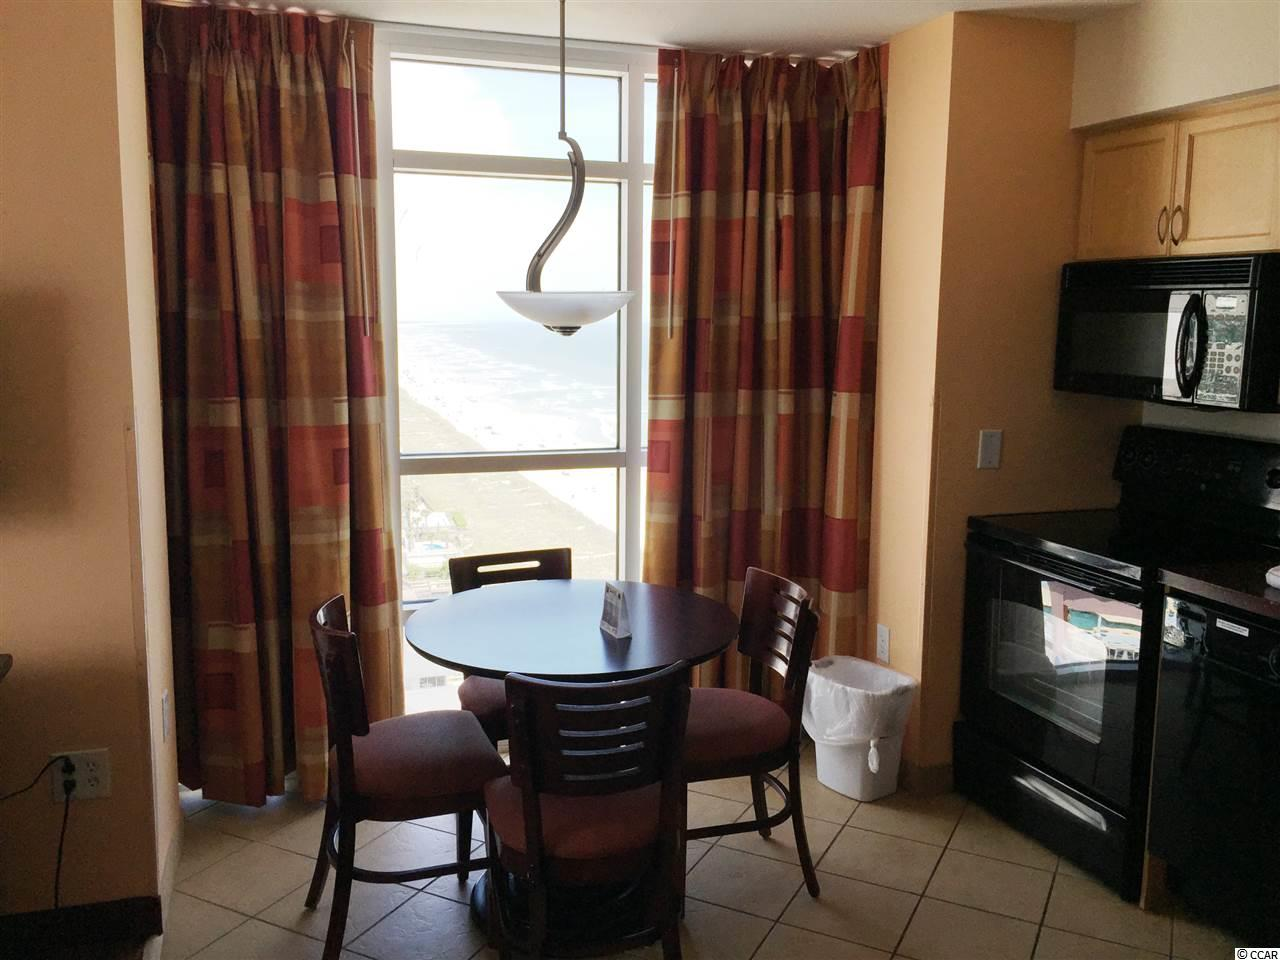 Prince Resort - Phase I - Cherry condo for sale in North Myrtle Beach, SC